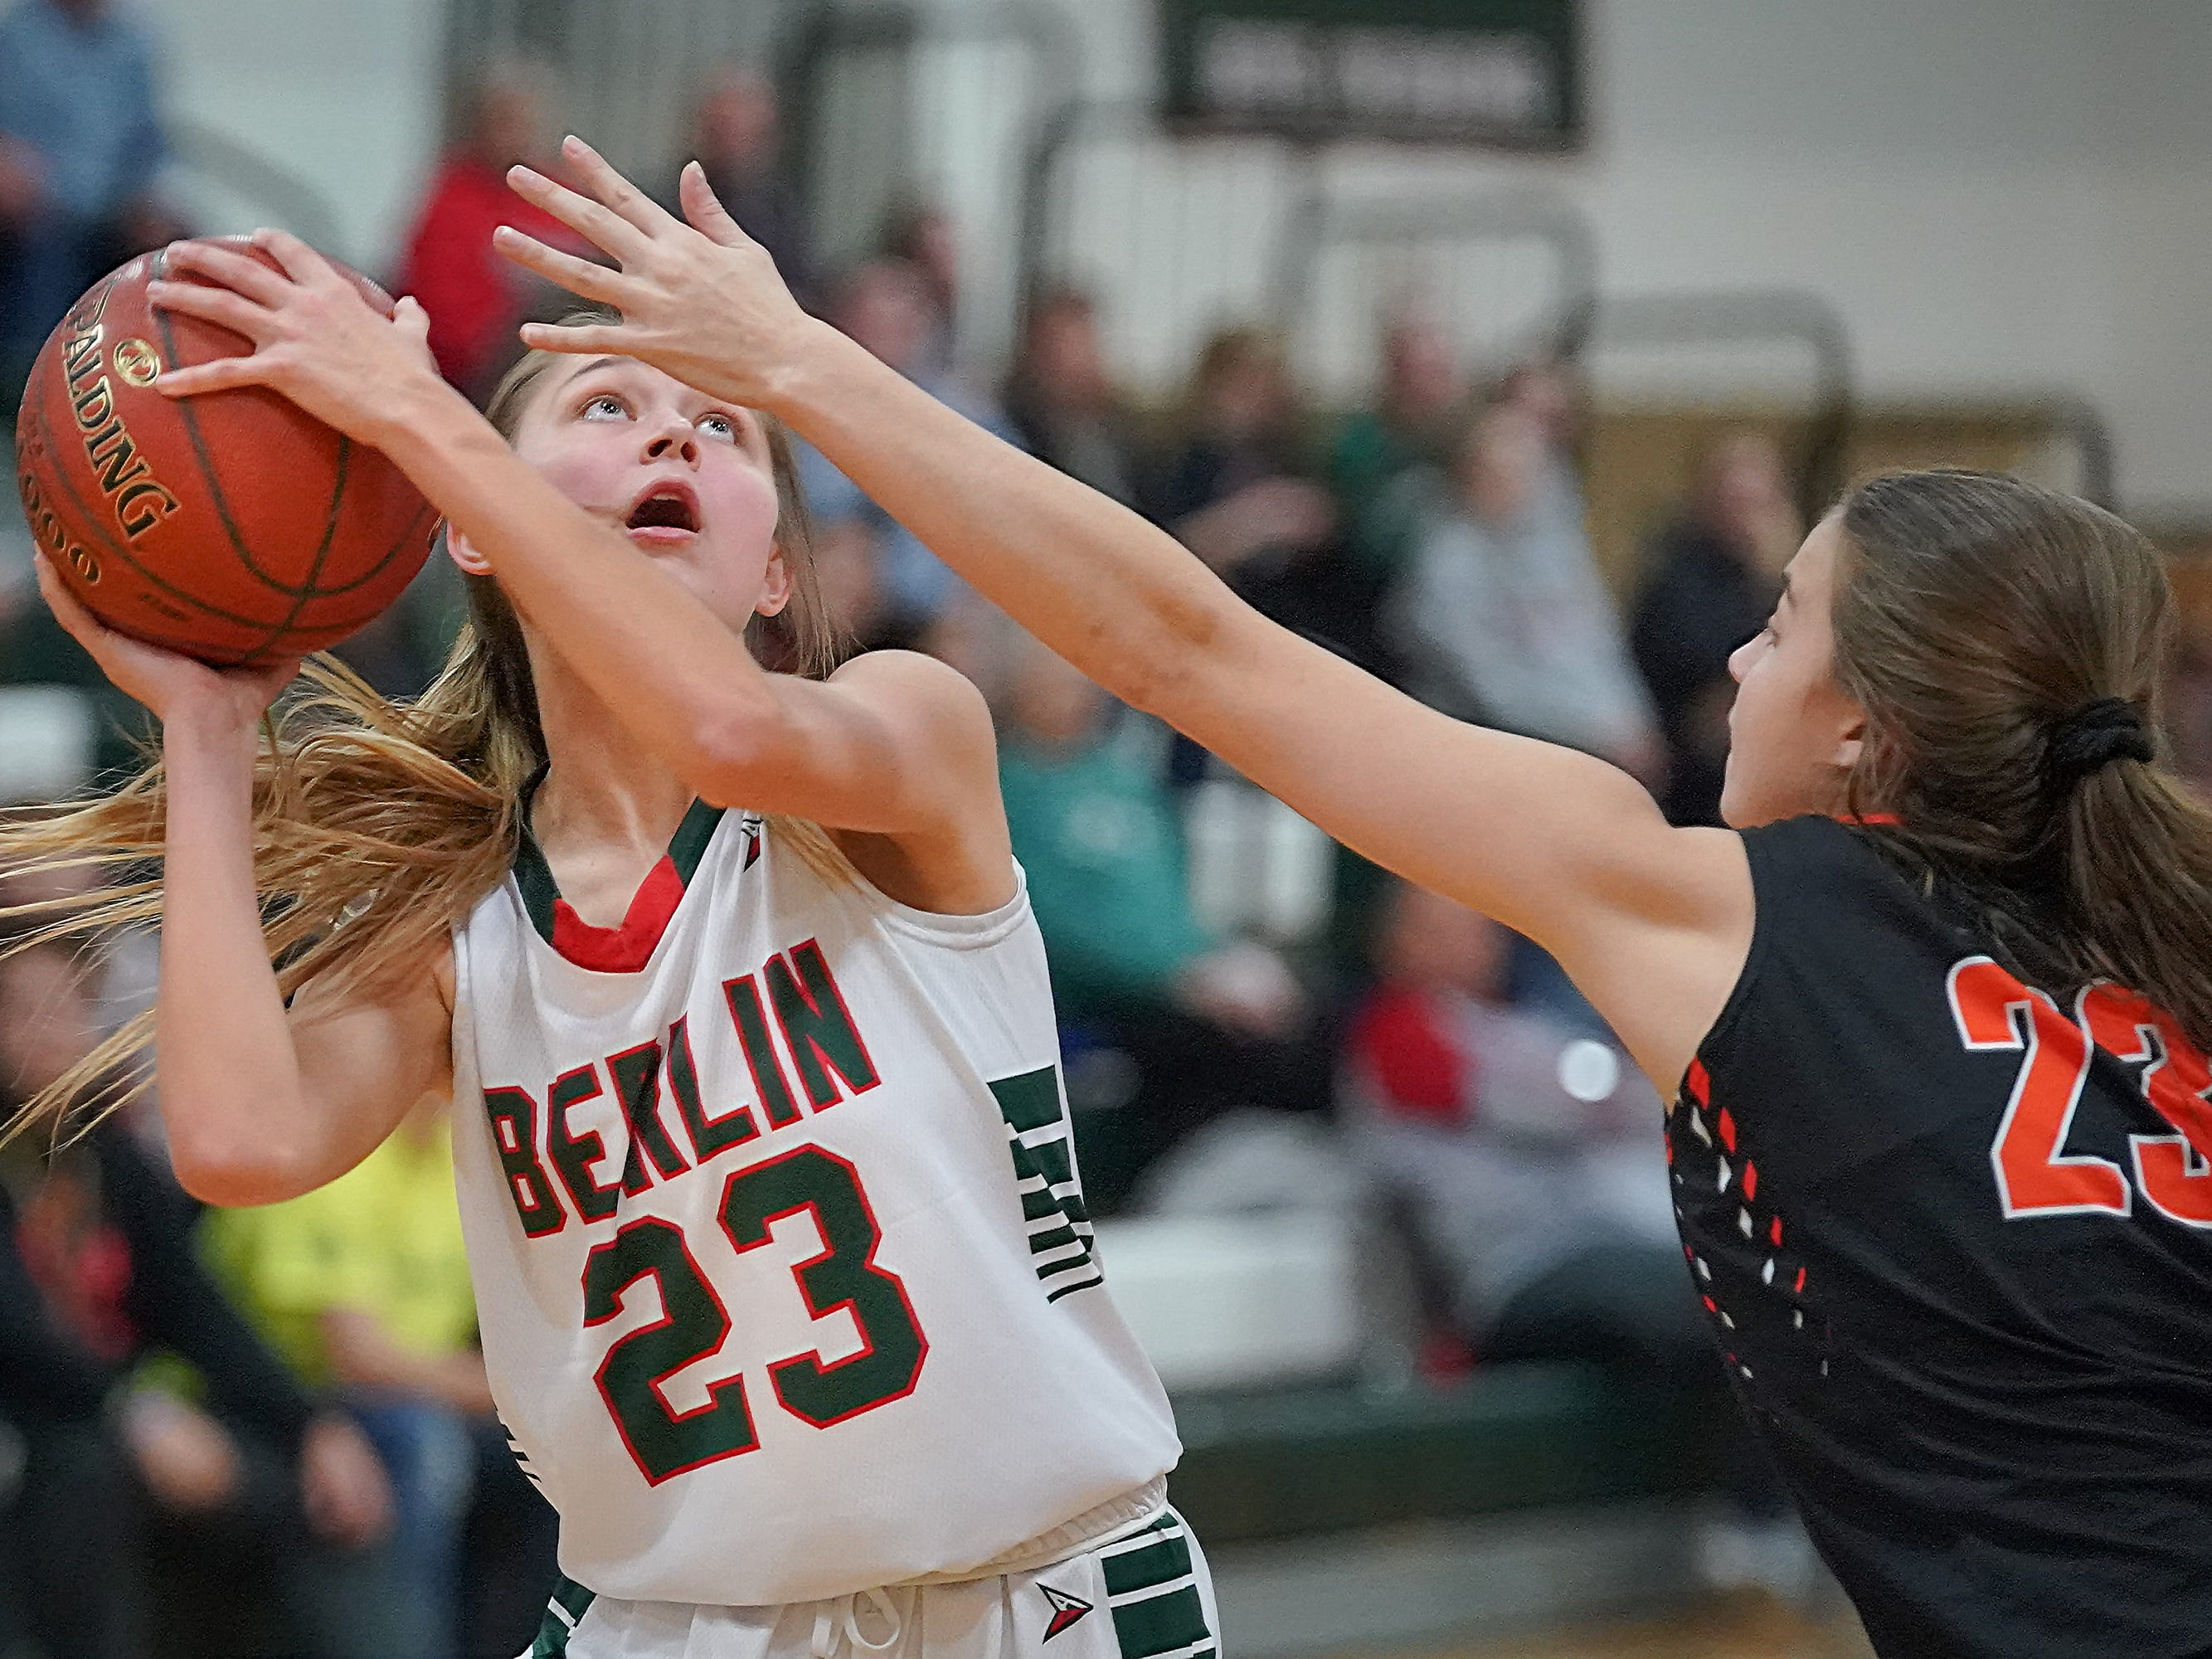 Emily Klawitter (23) of Berlin keeps her eye on the basket as she shoots. The Berlin Indians hosted the Plymouth Panthers in an East Central Conference basketball game Thursday evening, December 13, 2018.